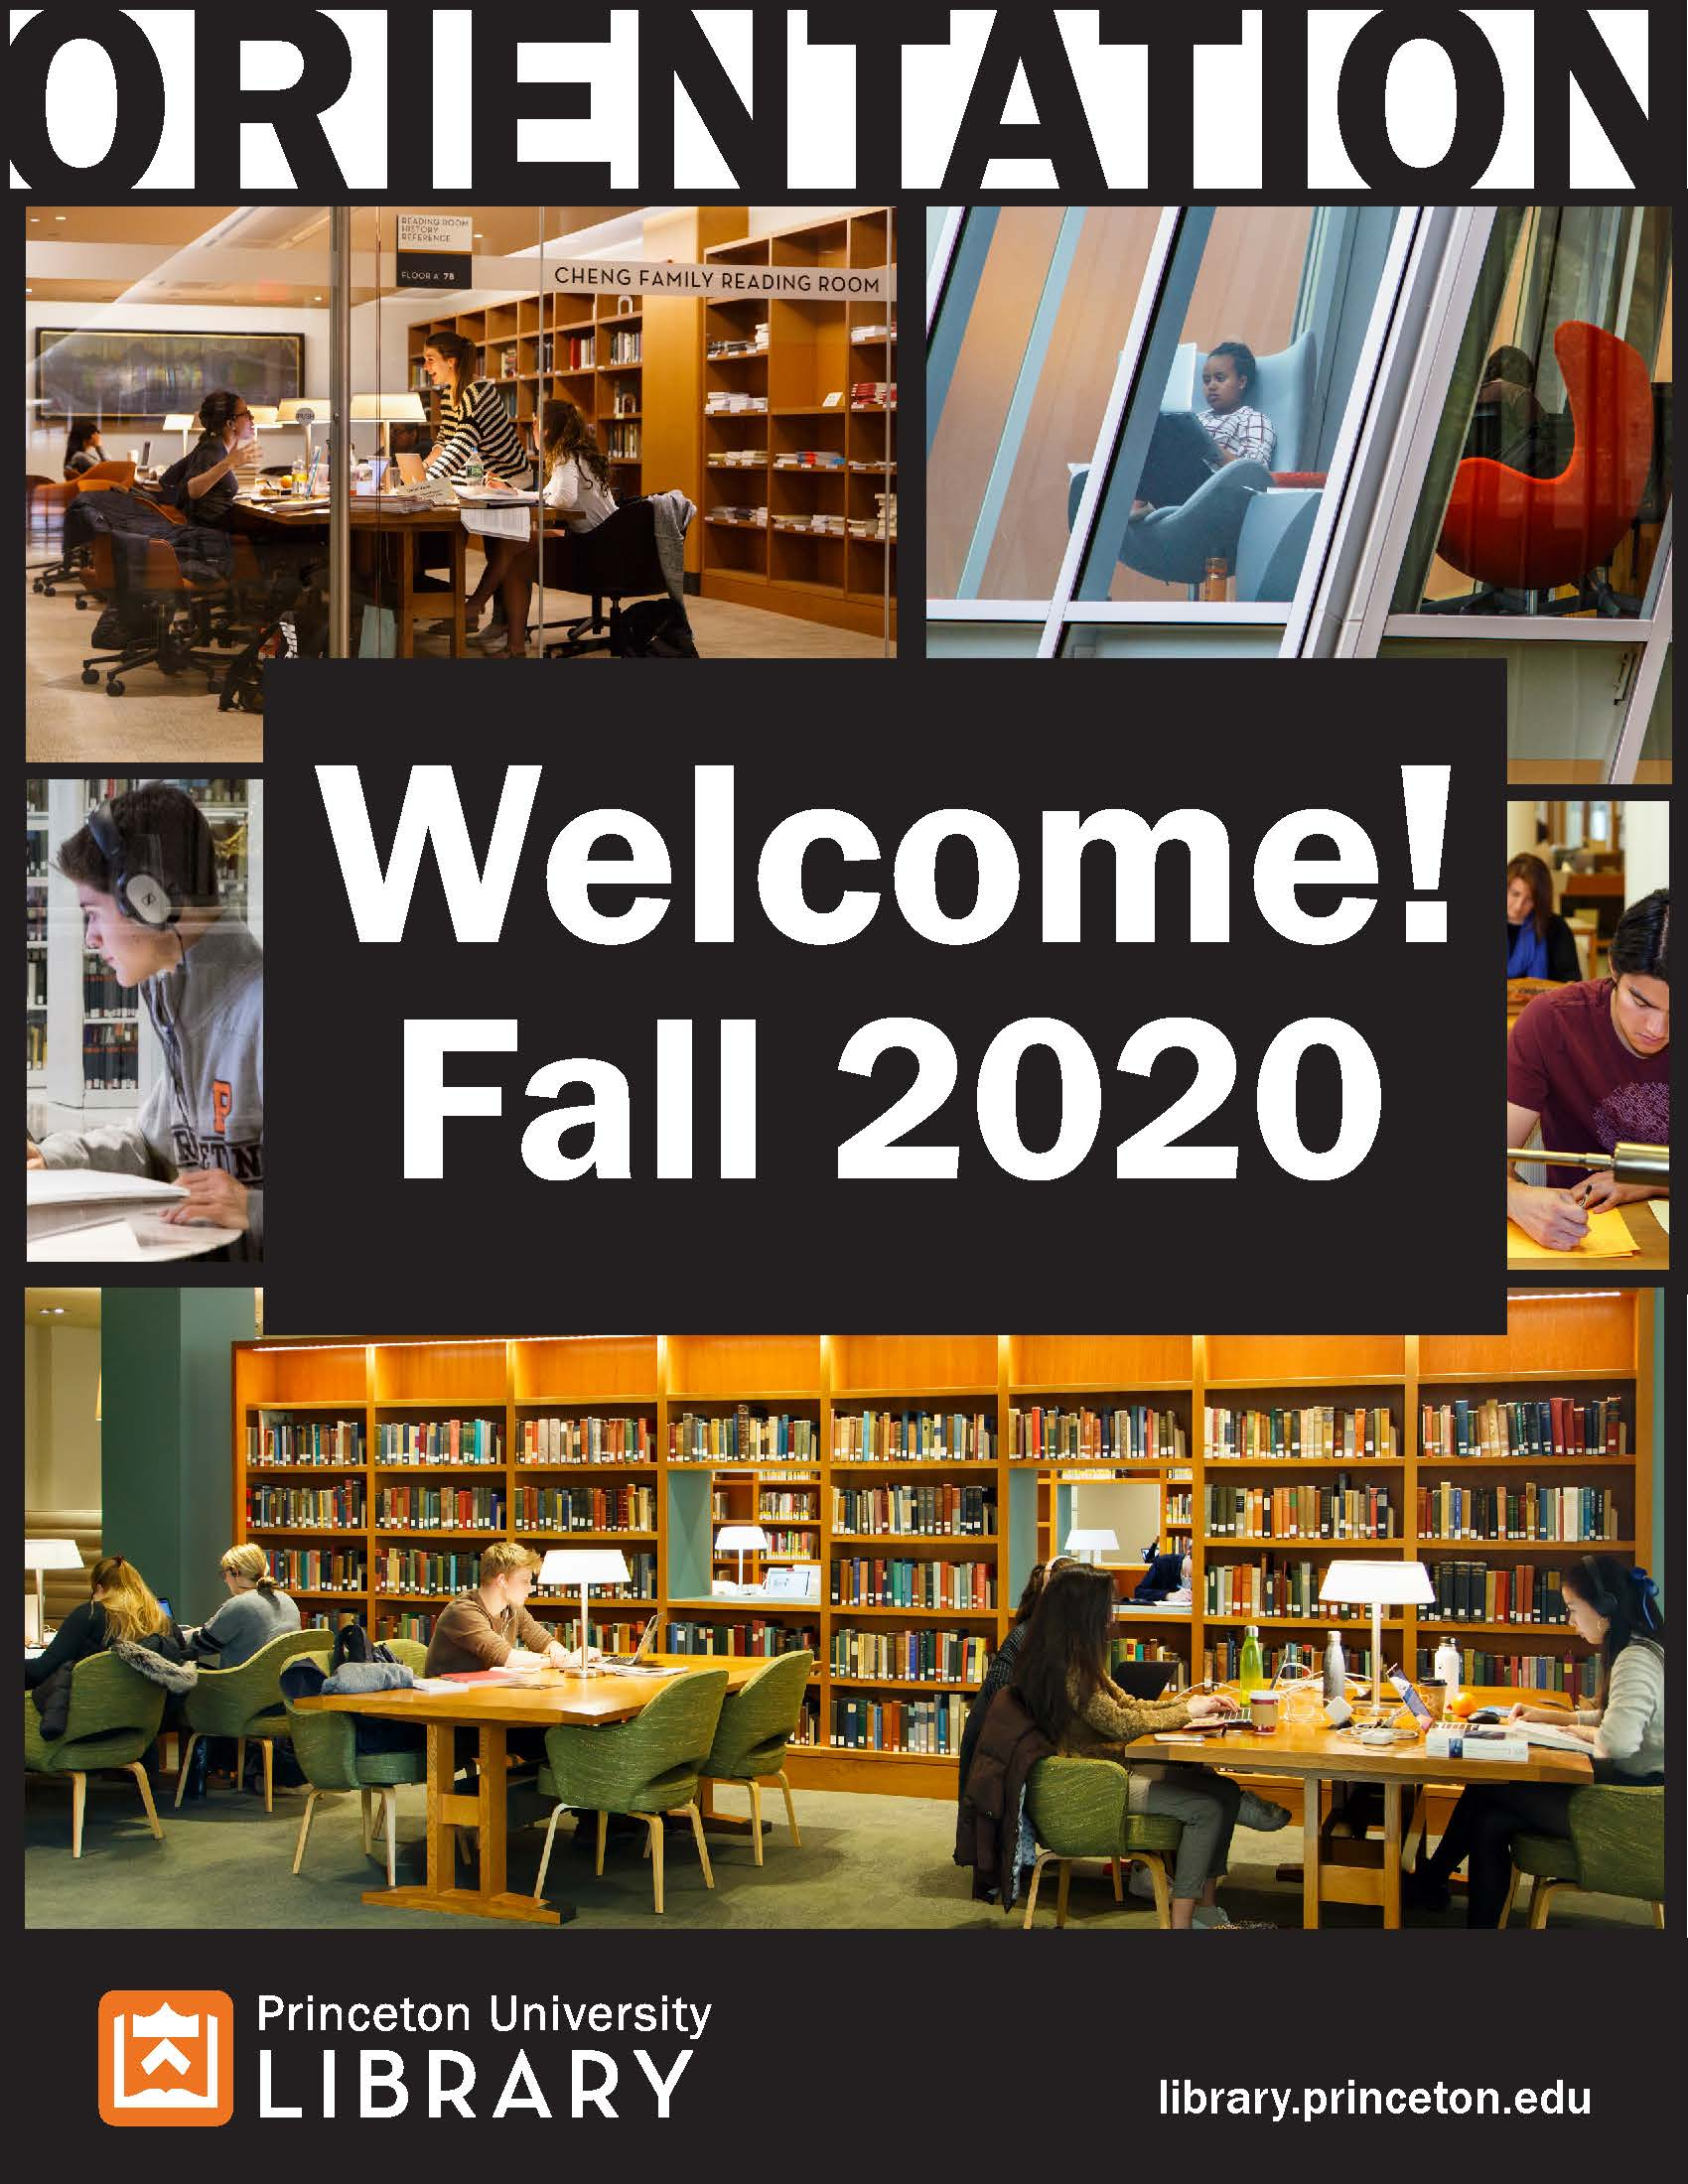 Orientation Welcome Fall 2020